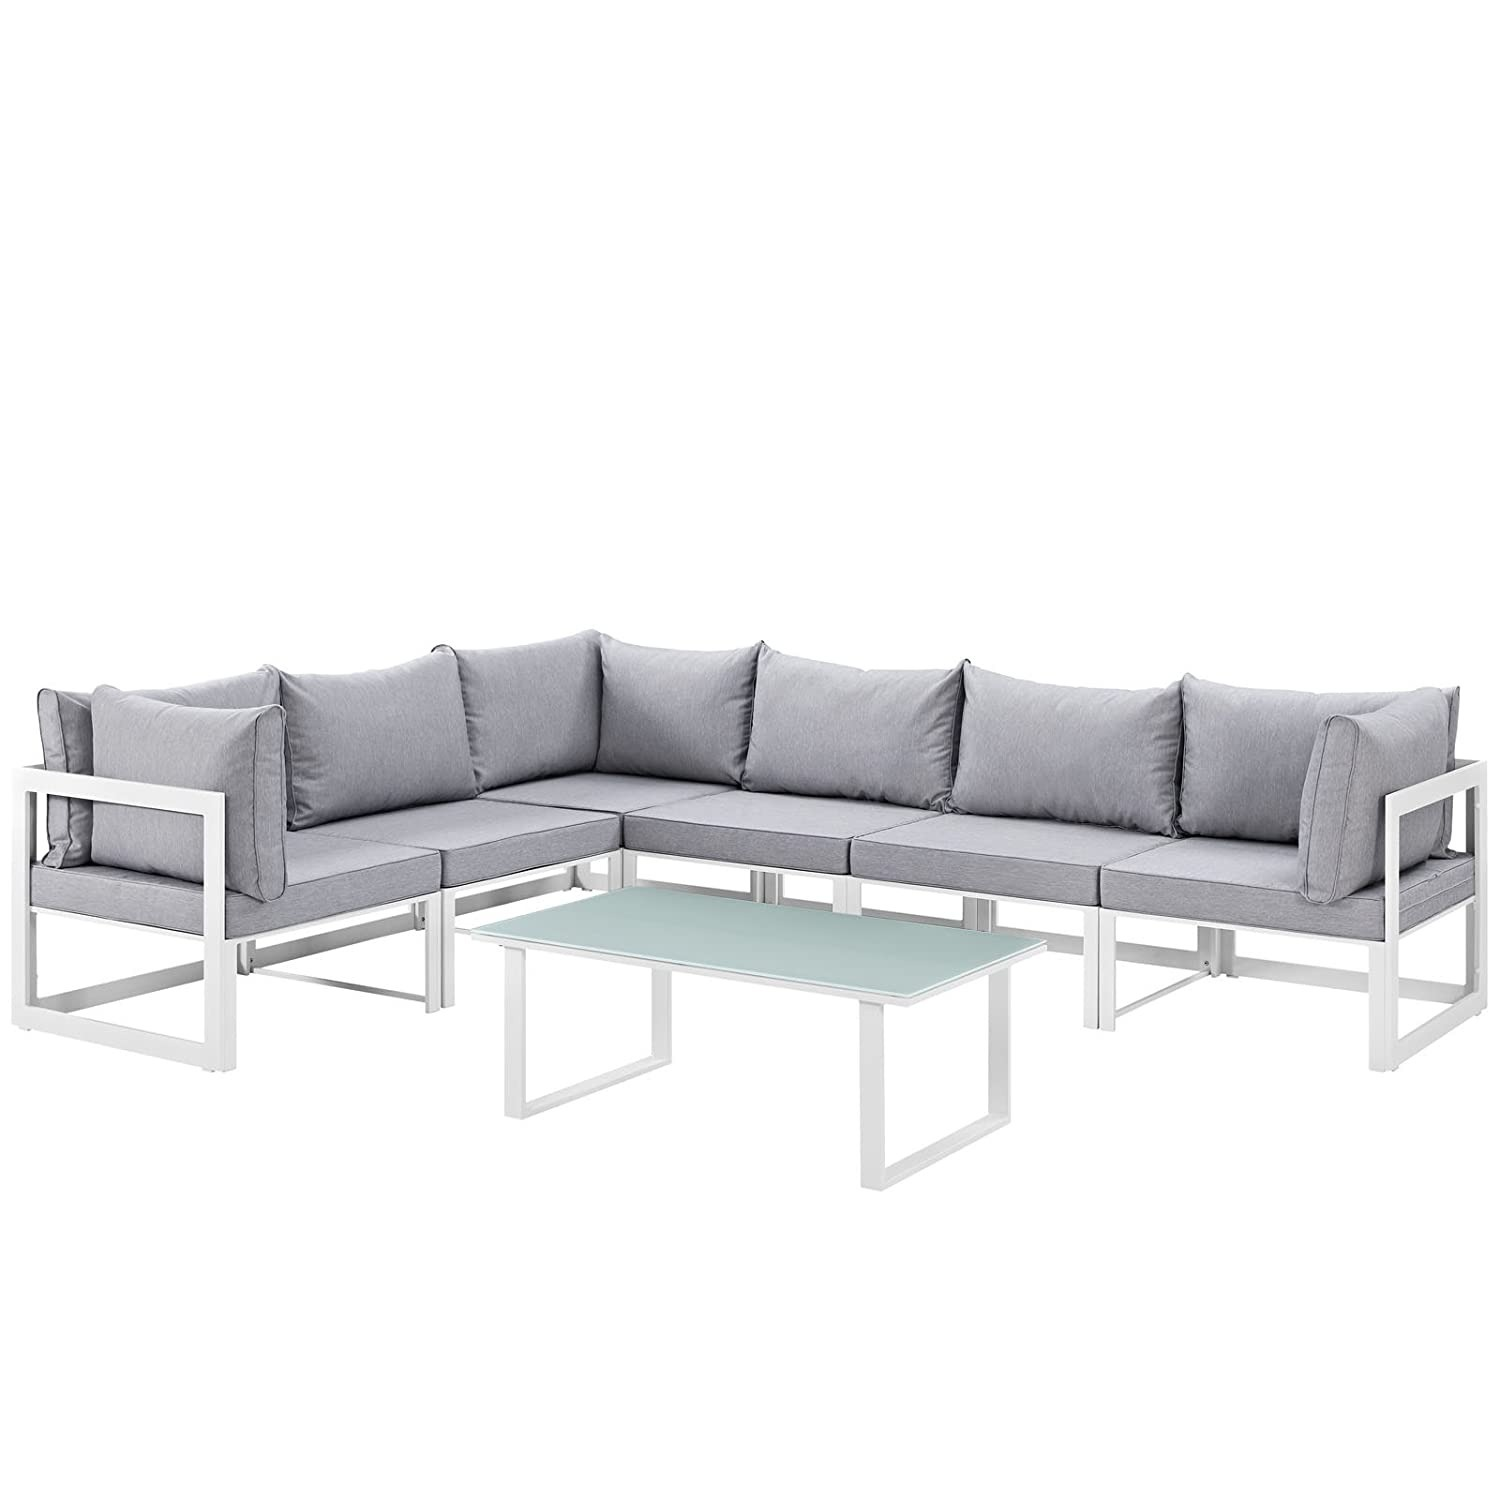 7-Piece Outdoor Sectional In Gray Fabric Cushion - image-0